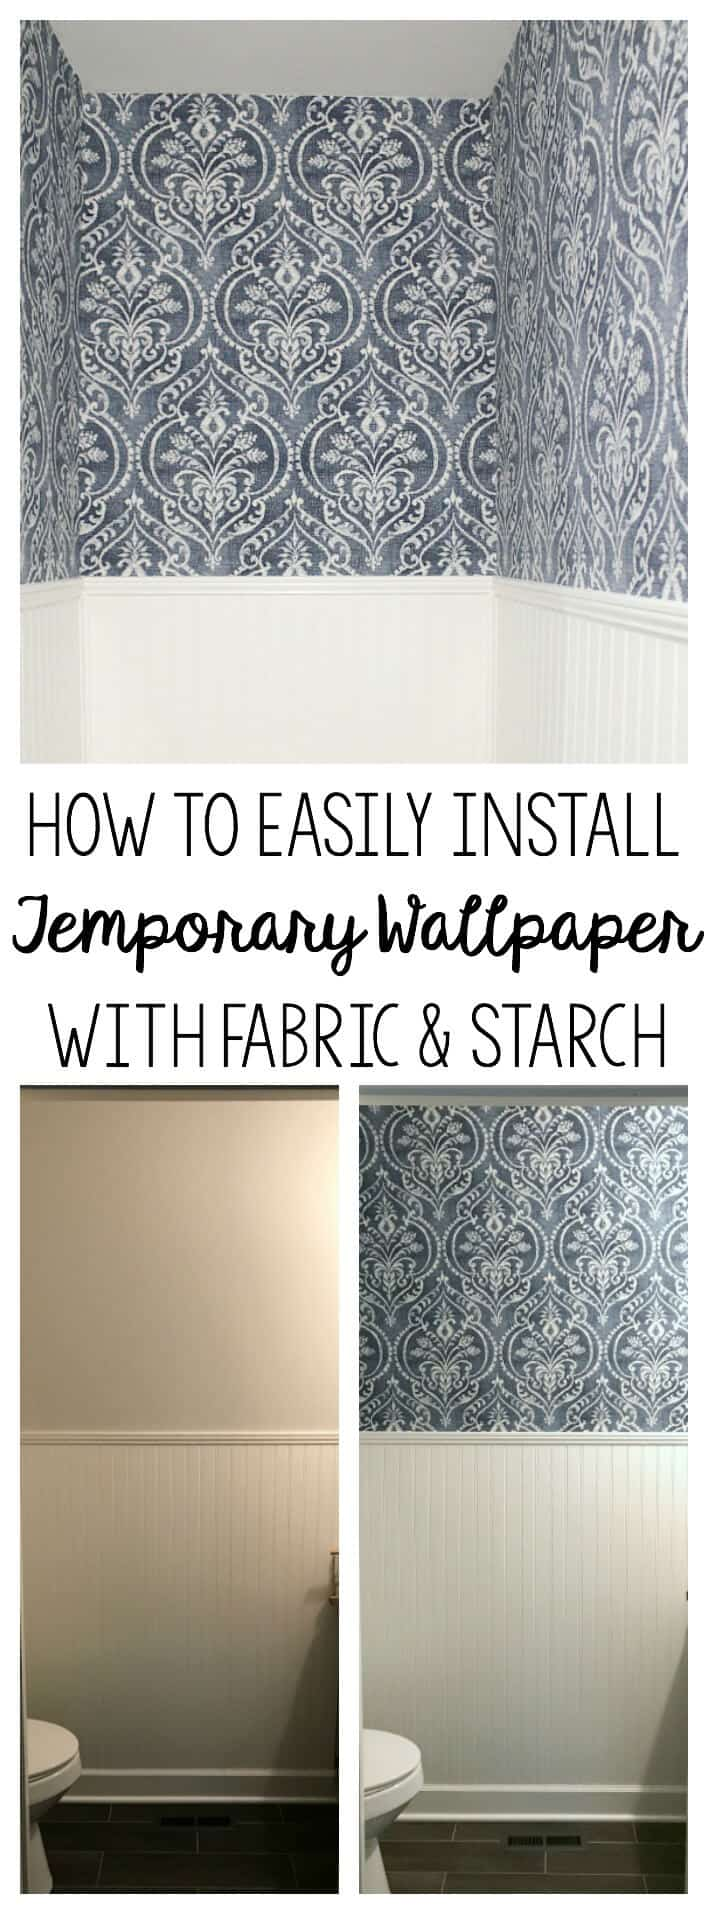 Temporary Wallpaper Tutorial: Looking for a temporary solution to wallpaper? Here is a tutorial that shows how easy it is to install fabric wallpaper using starch. It's easily removed when you're ready for a change - perfect for renters!